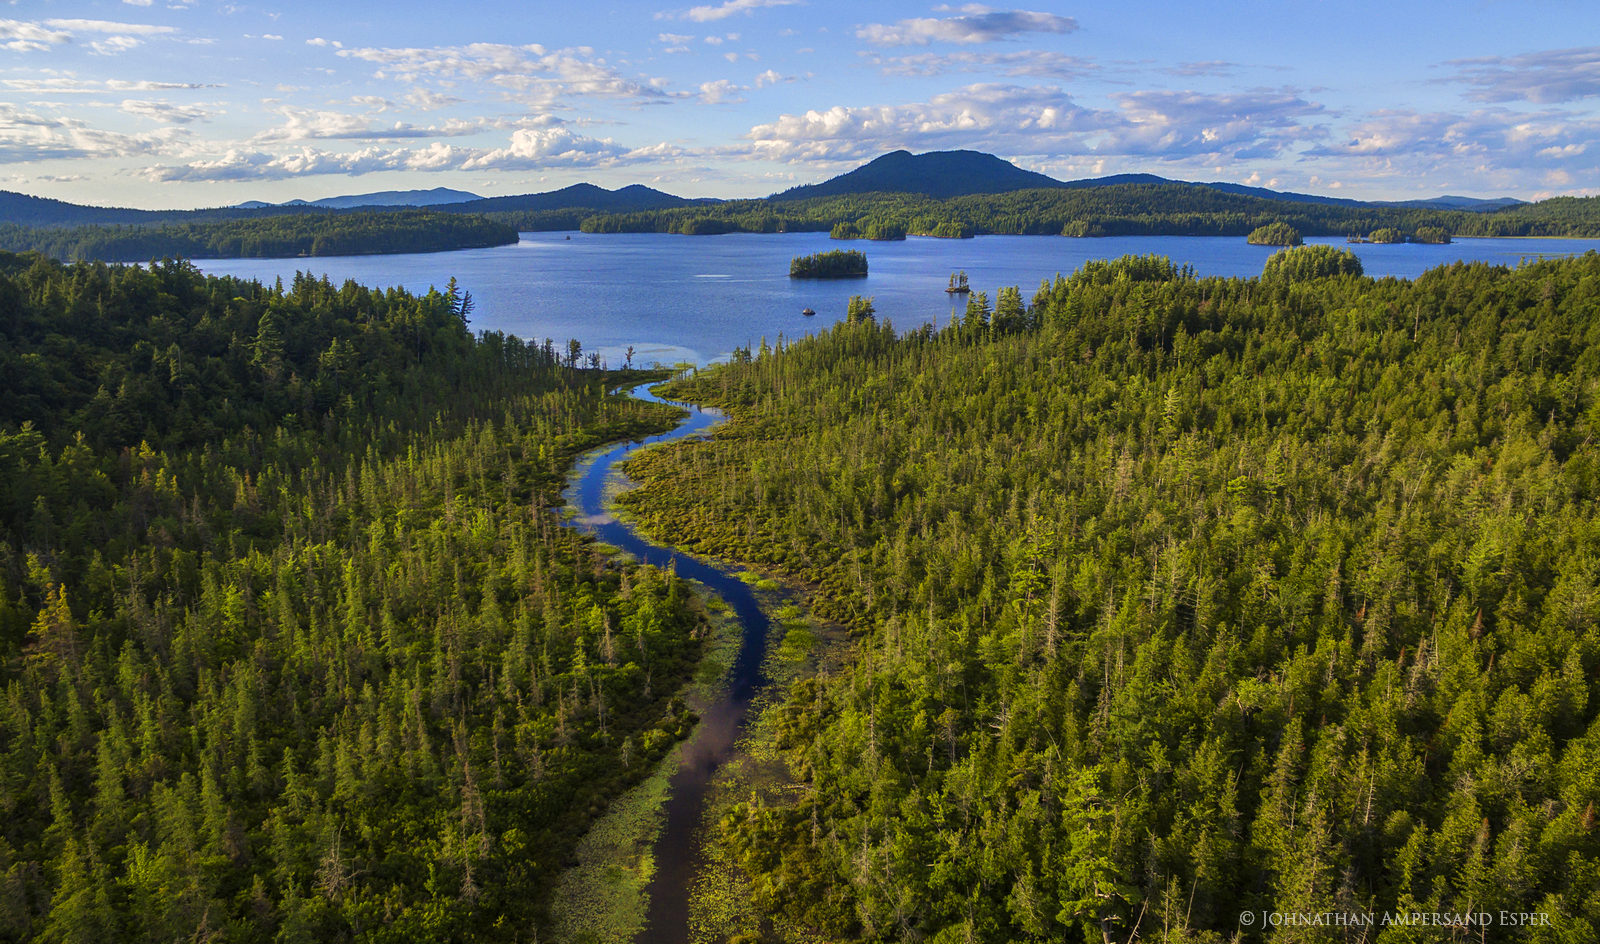 Middle Saranac Lake,drone,aerial,island,summer,sunset,summer sunset,Saranac Lakes,Adirondack Park,lake,waters,inlet,Middle Saranac Lake inlet,canoe put-in,put-in,Saranac Lake,, photo